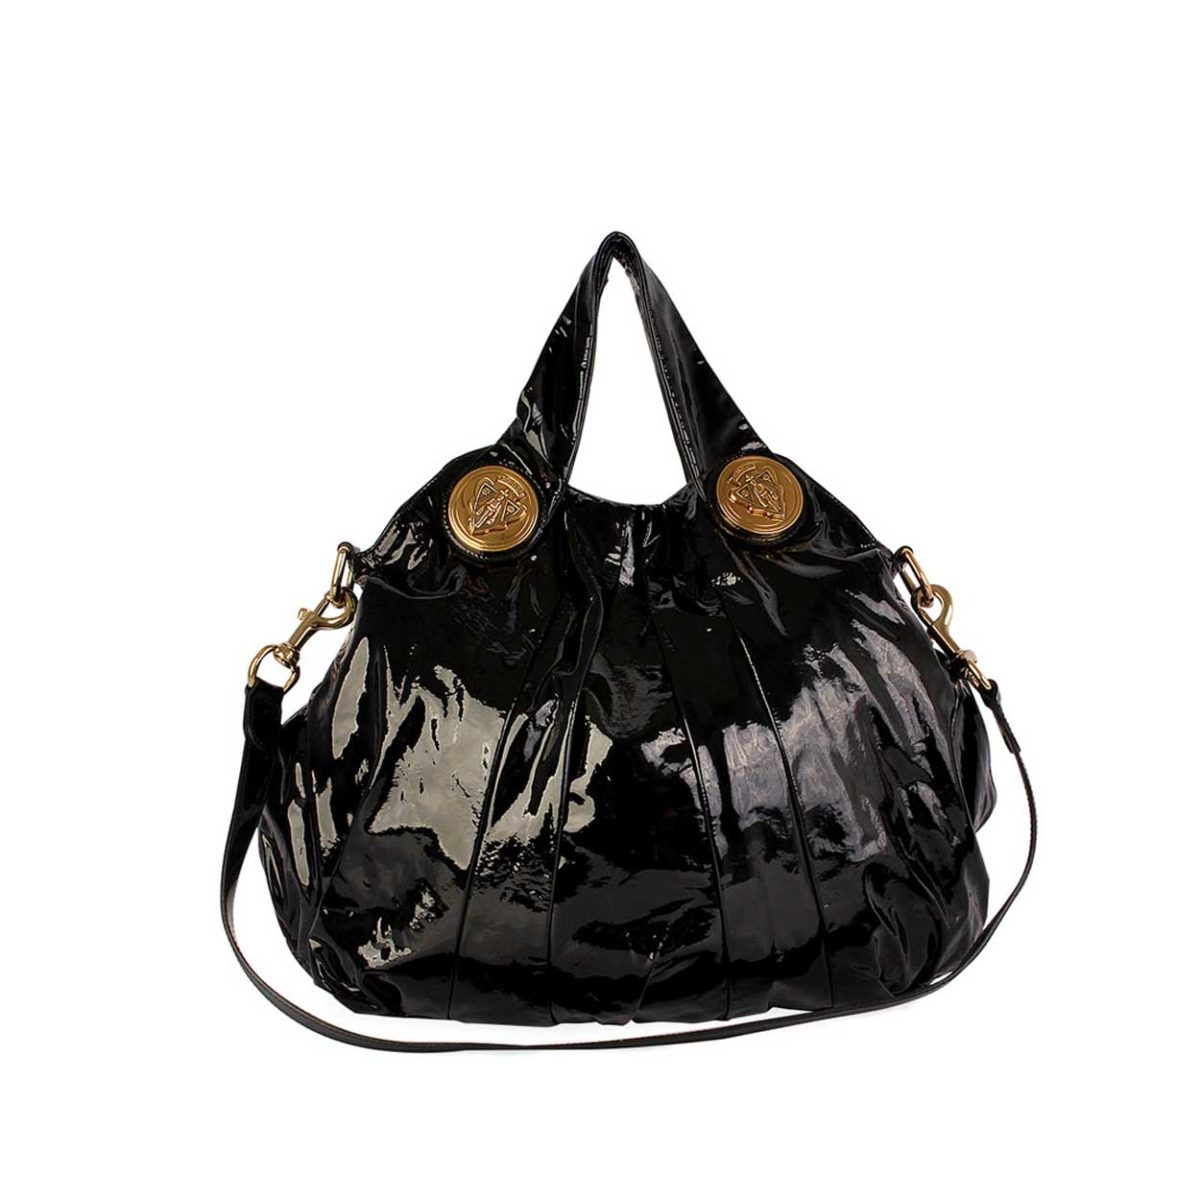 731fc8f7887 GUCCI Patent Leather Hysteria Large Top Handle Black